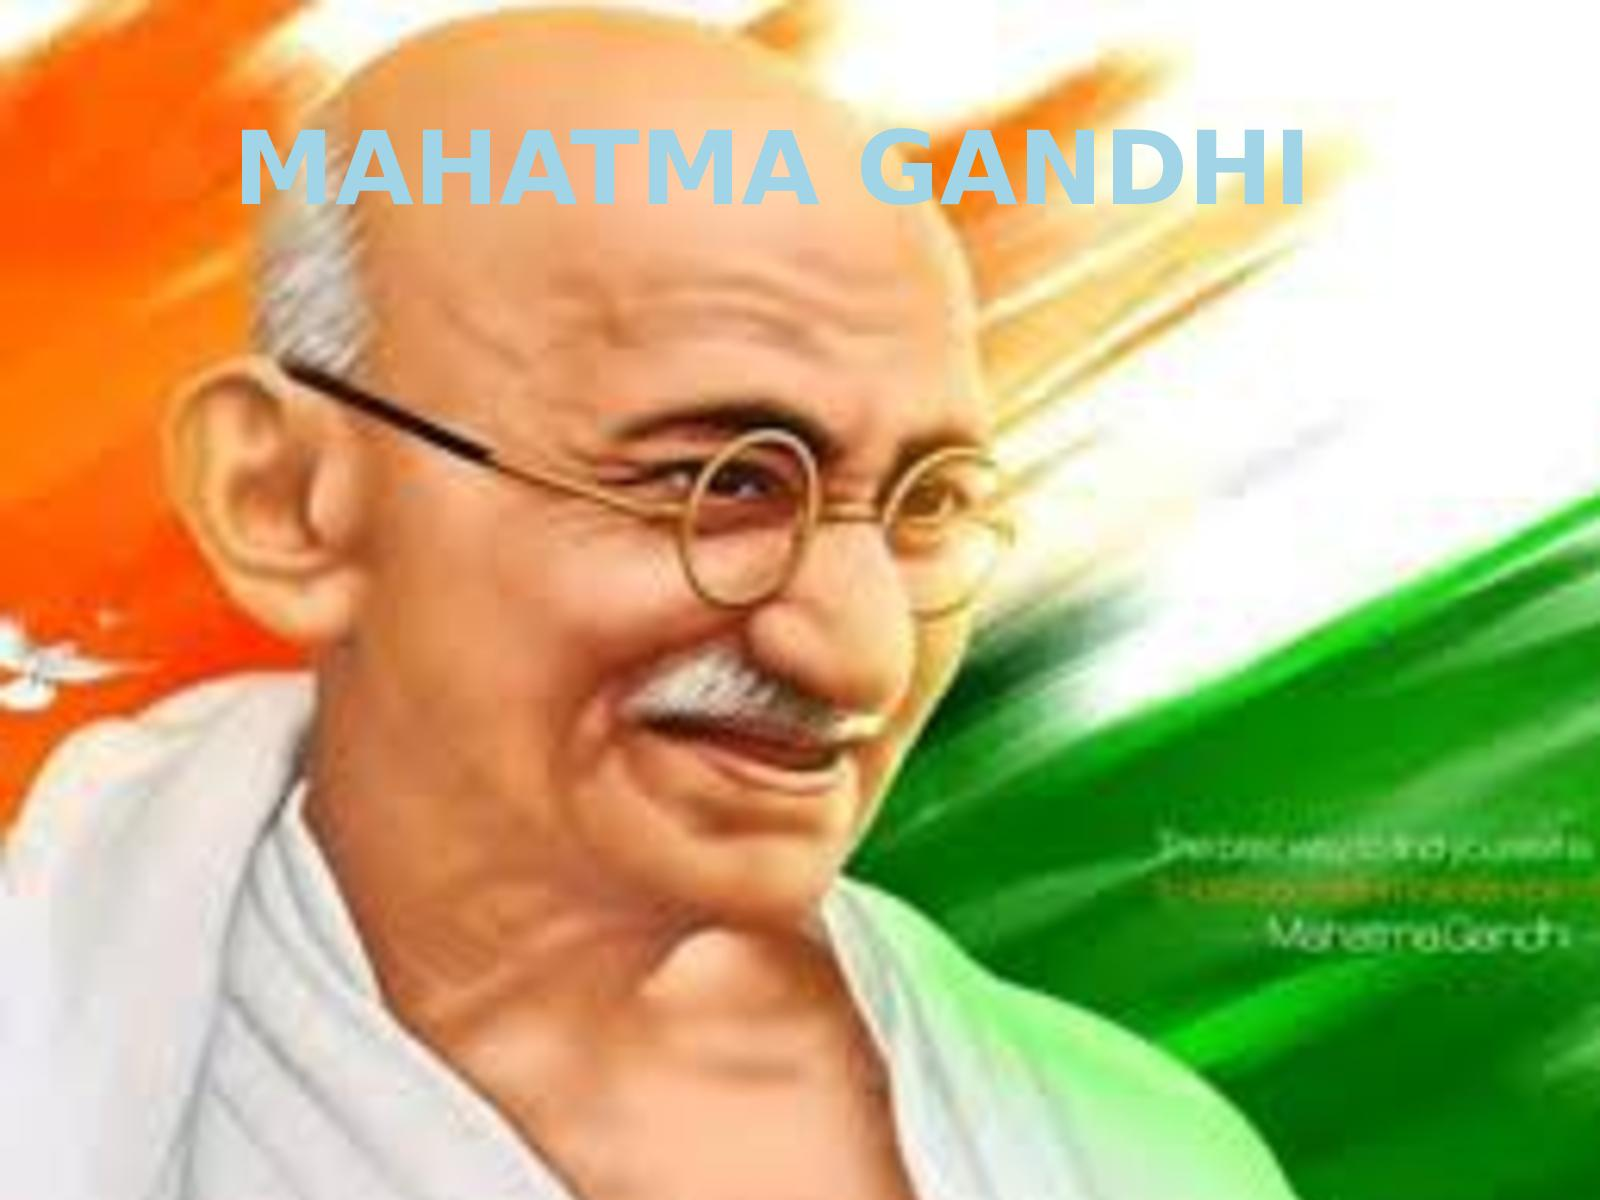 Gandi Picture English calam�o - mahatma gandi